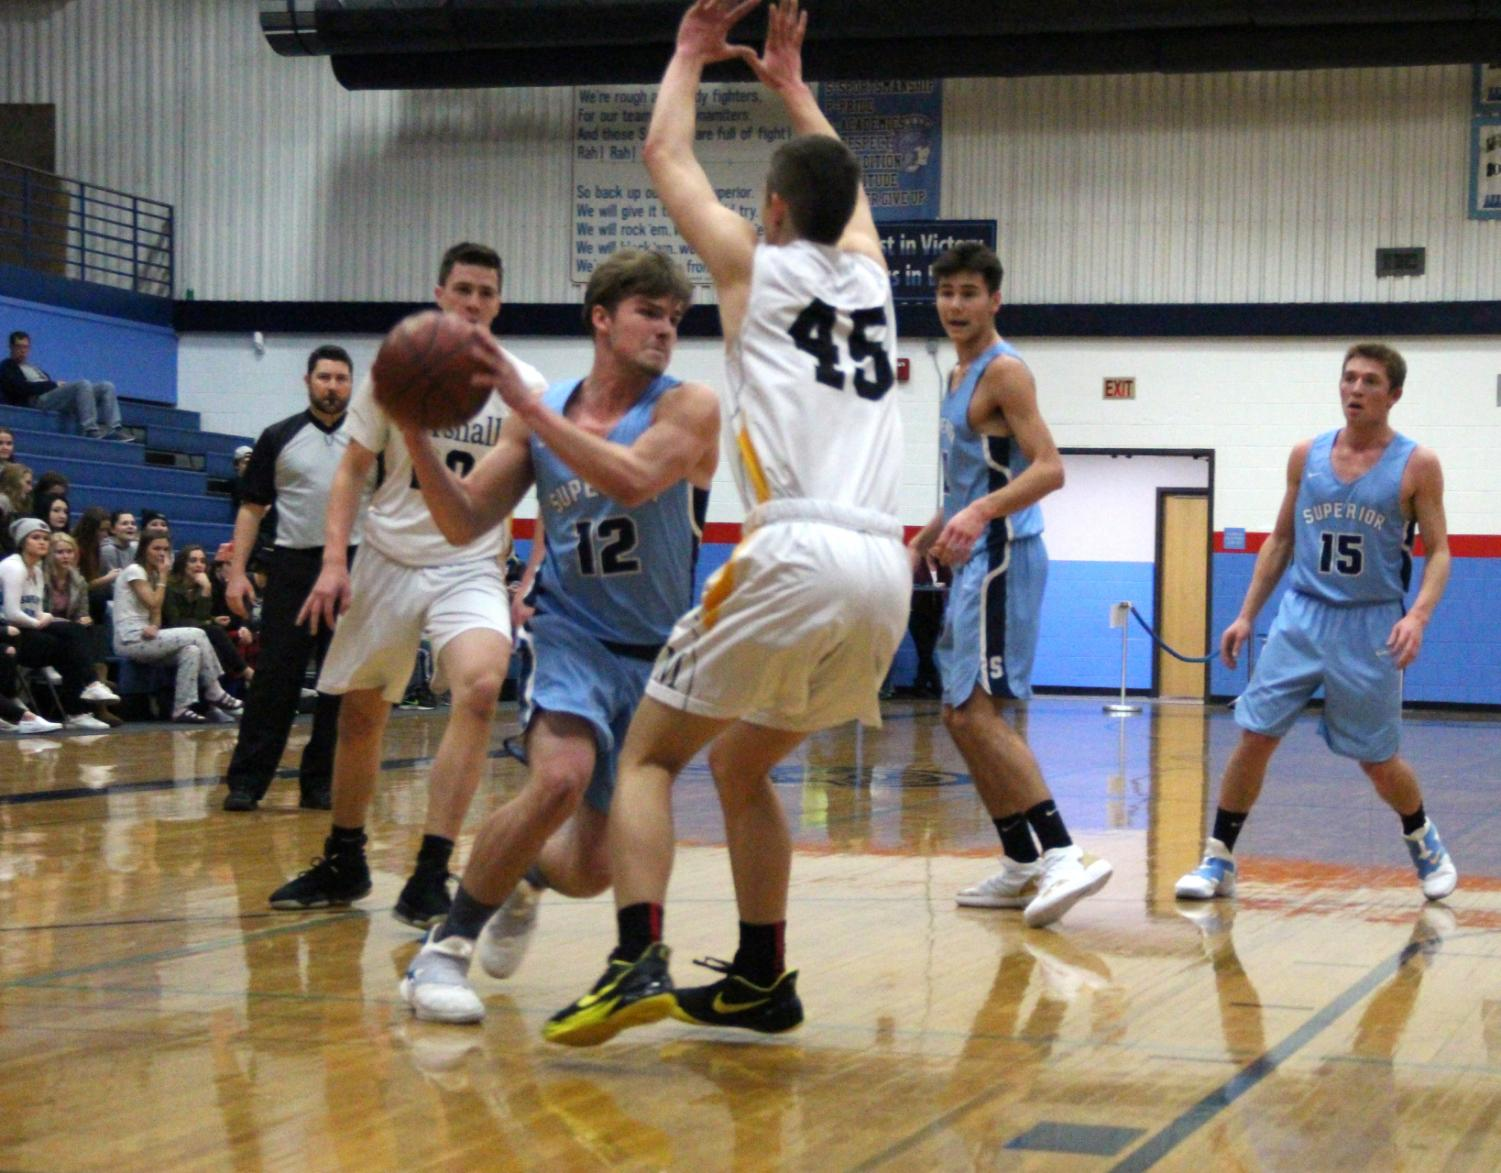 Beau Severson (12) drives to the hoop during the first half of the Spartans game with Duluth Marshall in Superior on Jan. 7. Severson paced the team in scoring with 20 points.